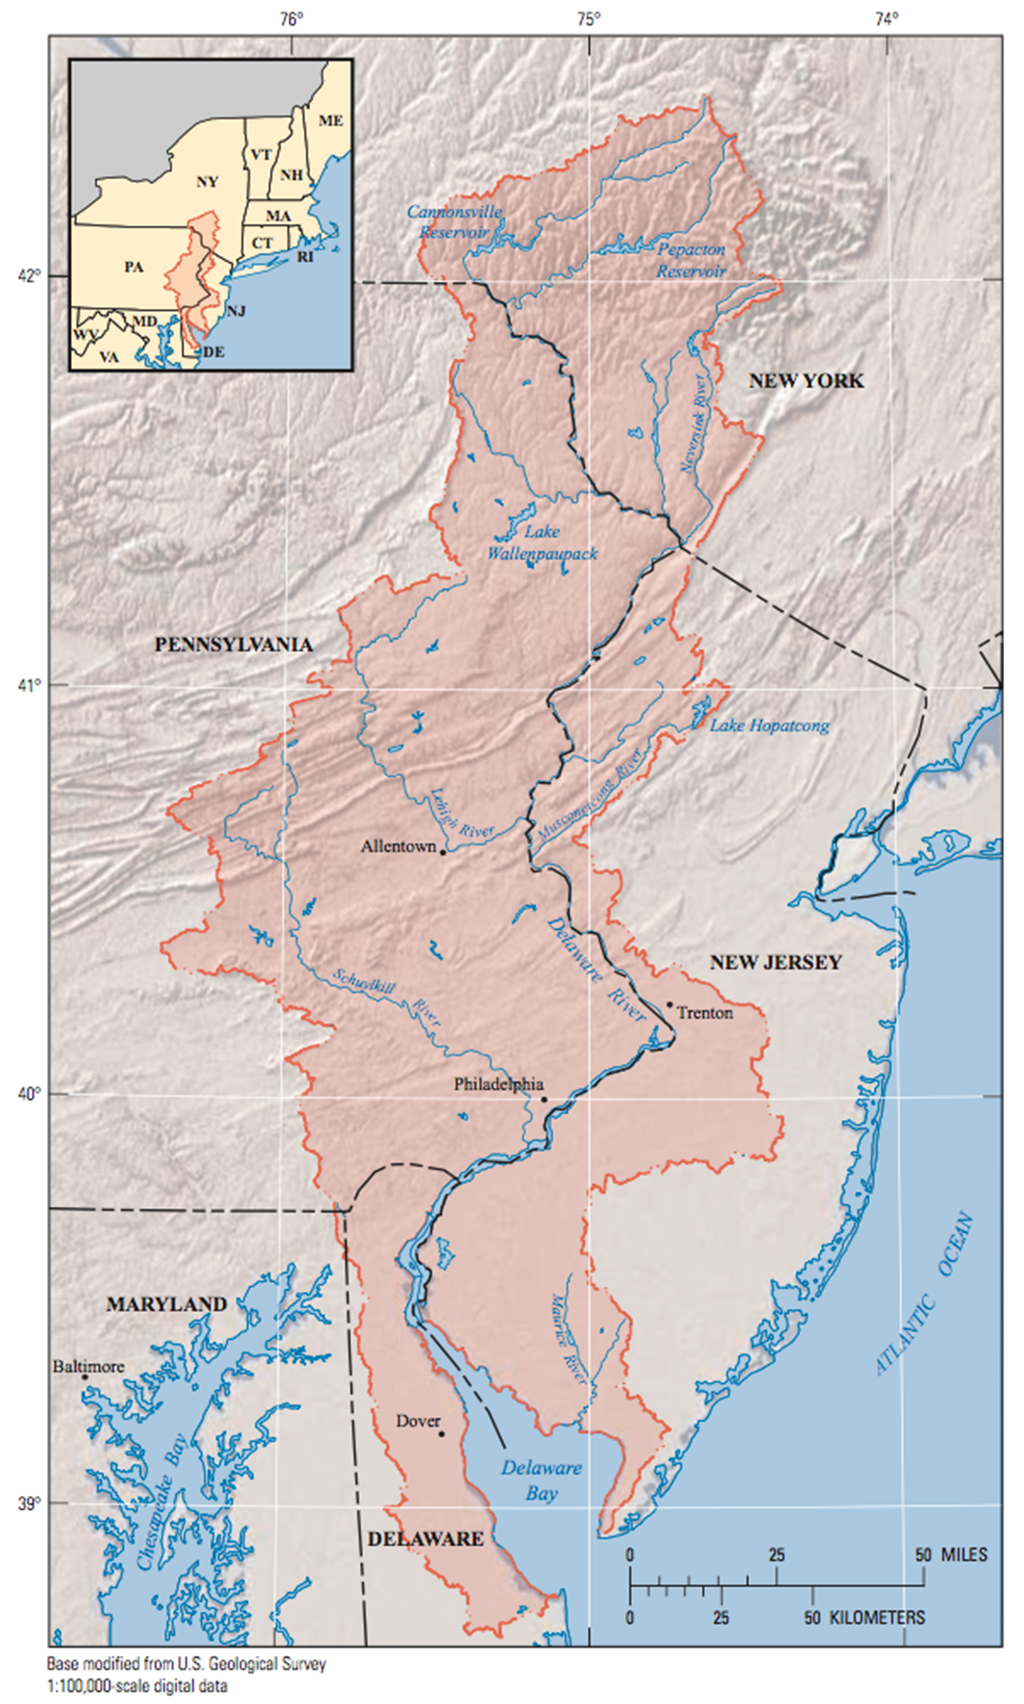 Map of the Delaware River Basin